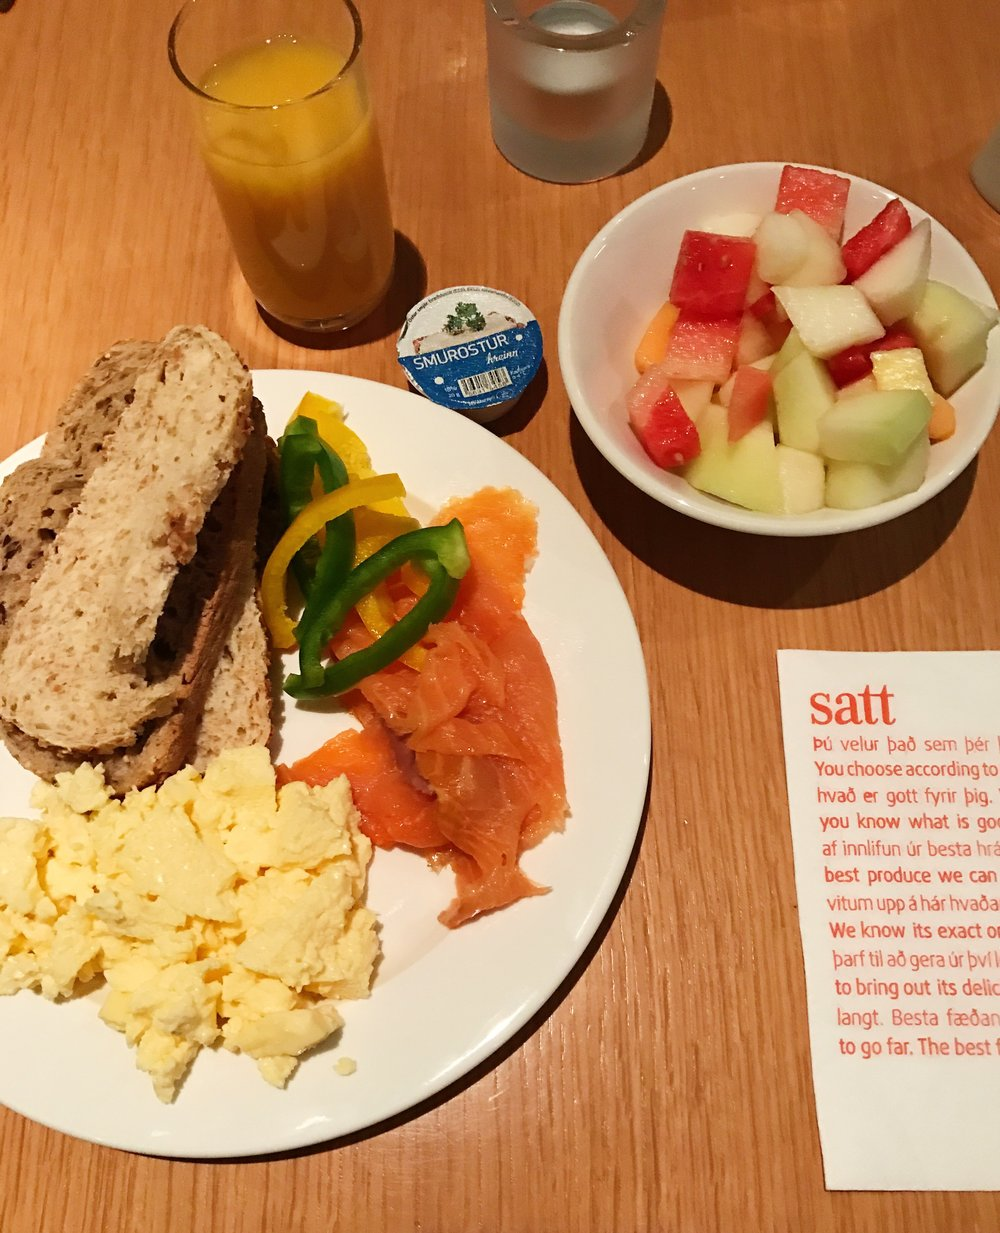 Pictured: Buffet Breakfast.  Cost: ISK 3000 per person = about $26.00